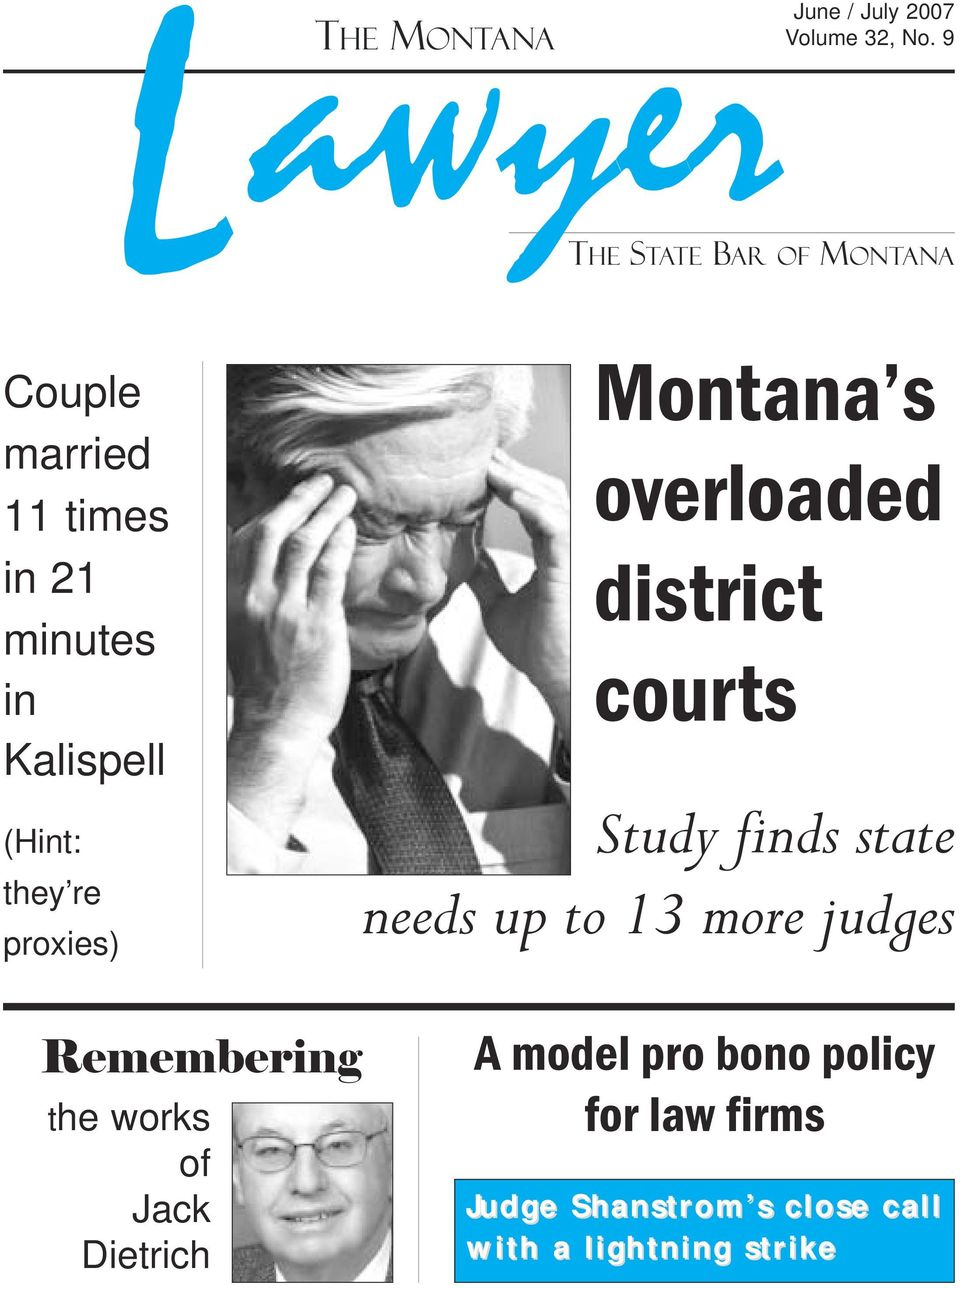 re proxies) Montana s overloaded district courts Study finds state needs up to 13 more